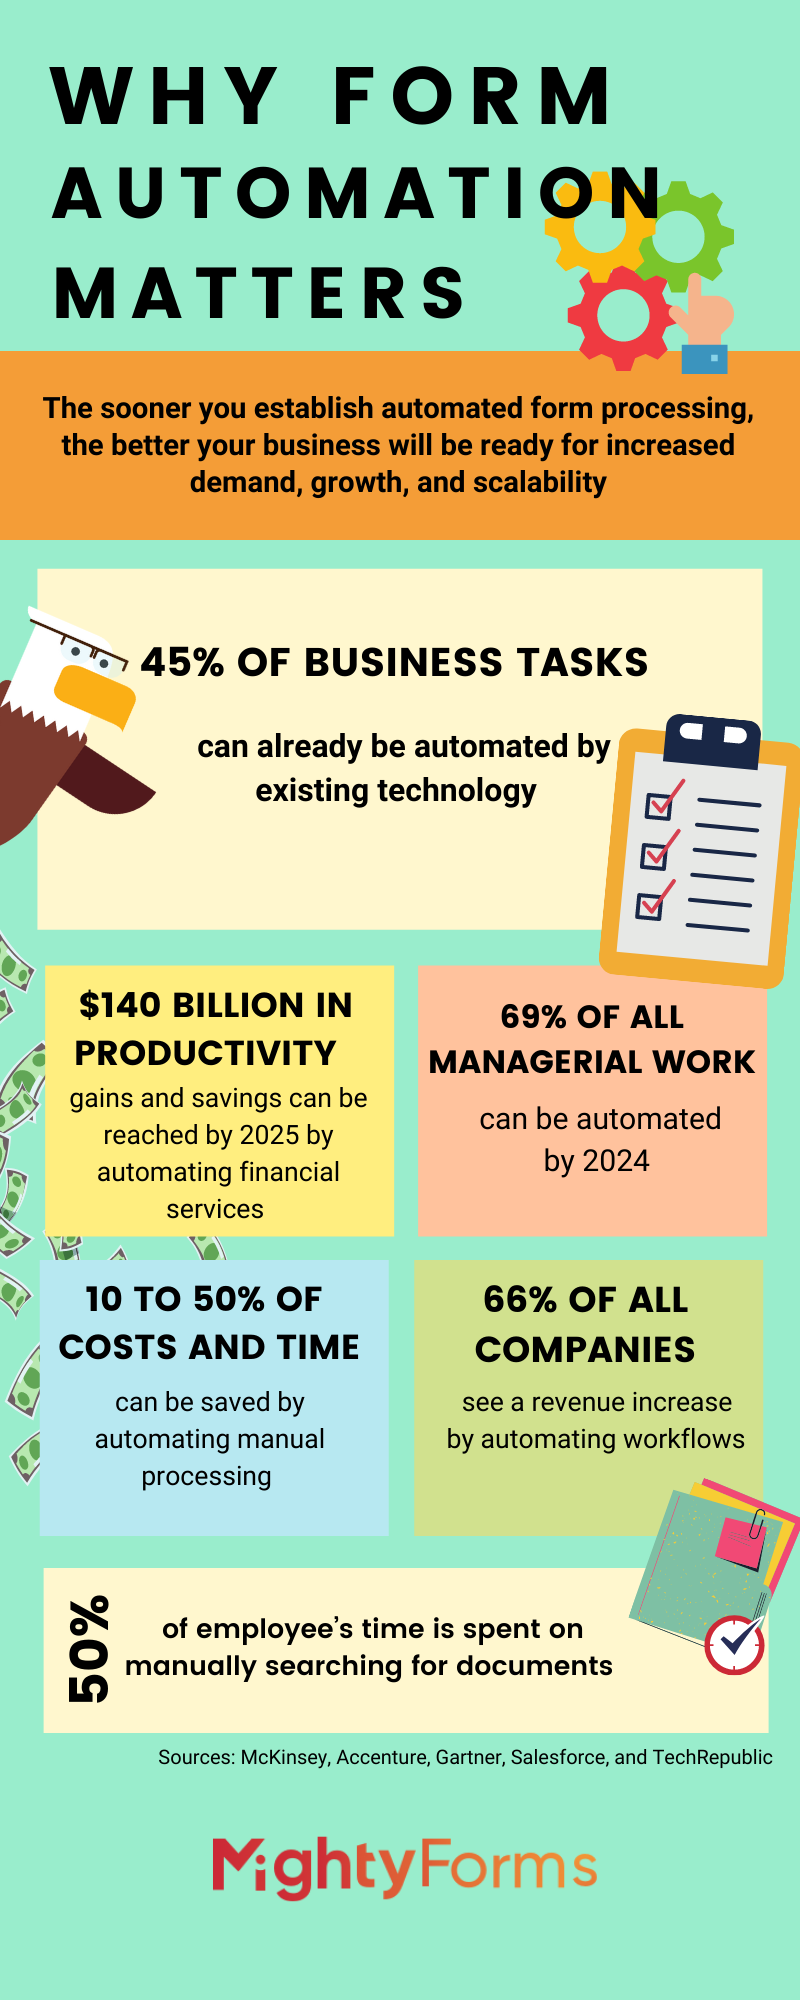 Automated form Processing infographic by MightyForms